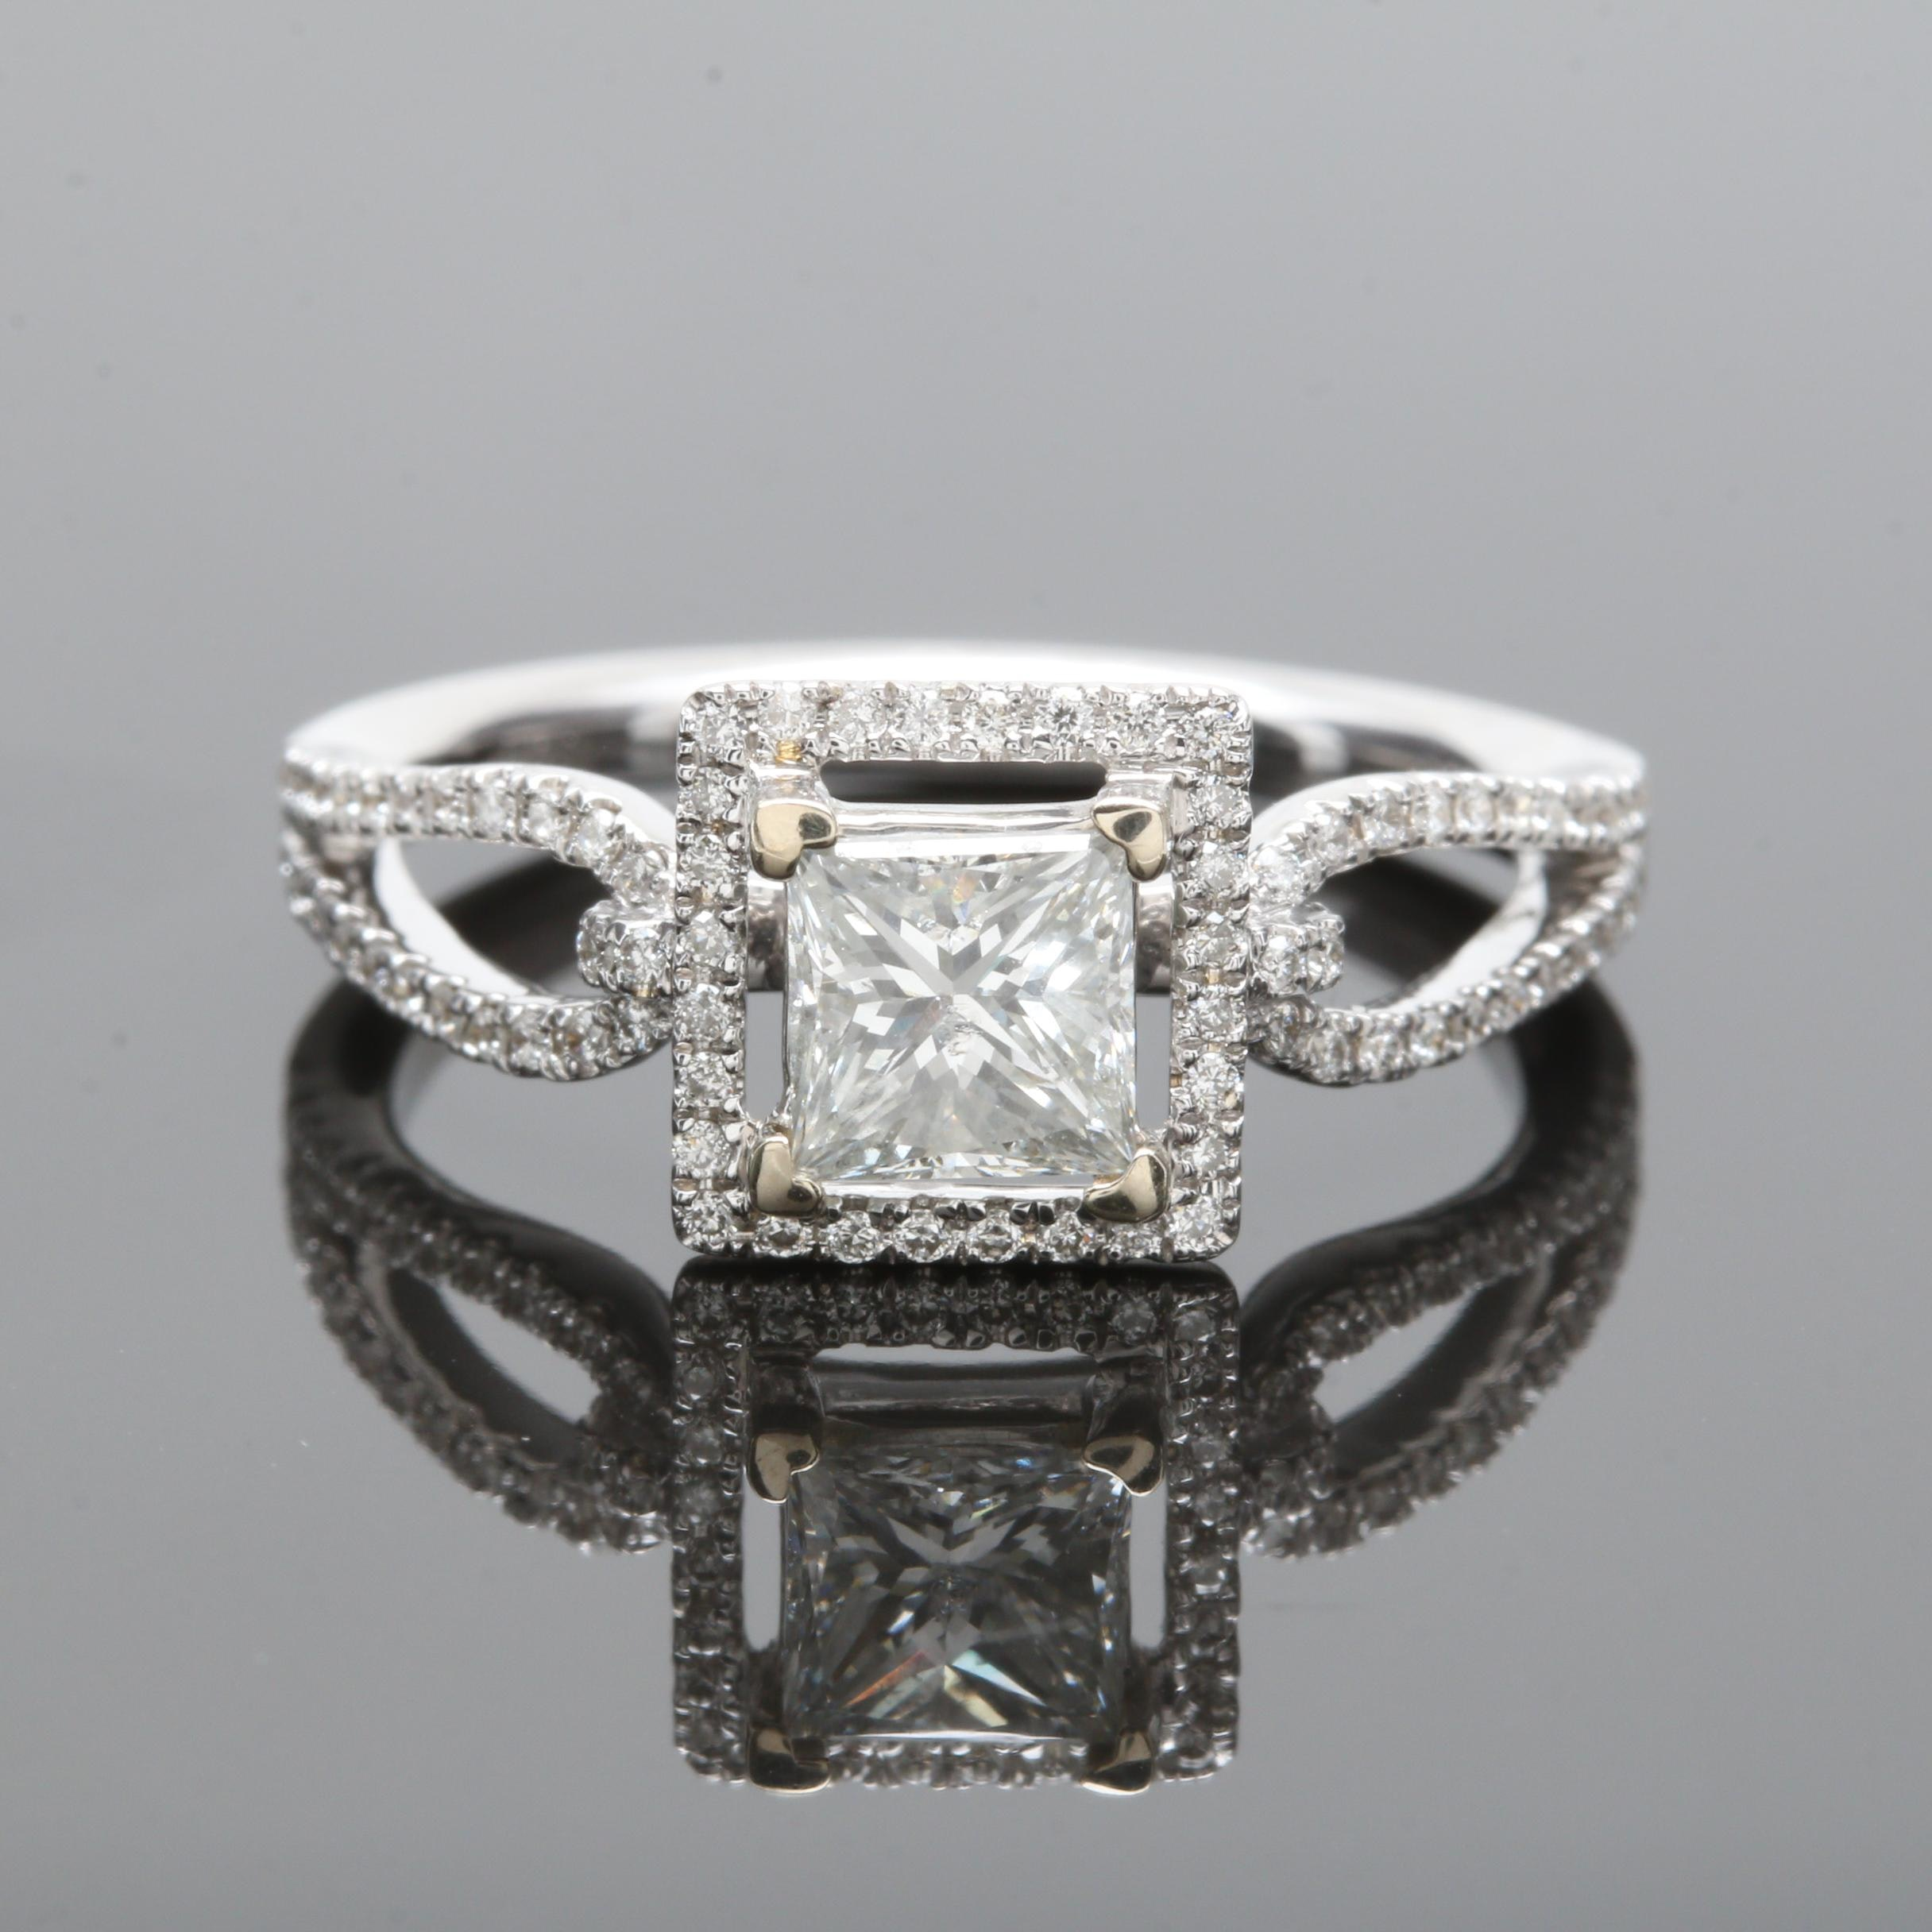 18K White Gold 1.02 CTW Diamond Ring With GSL Laser Inscription